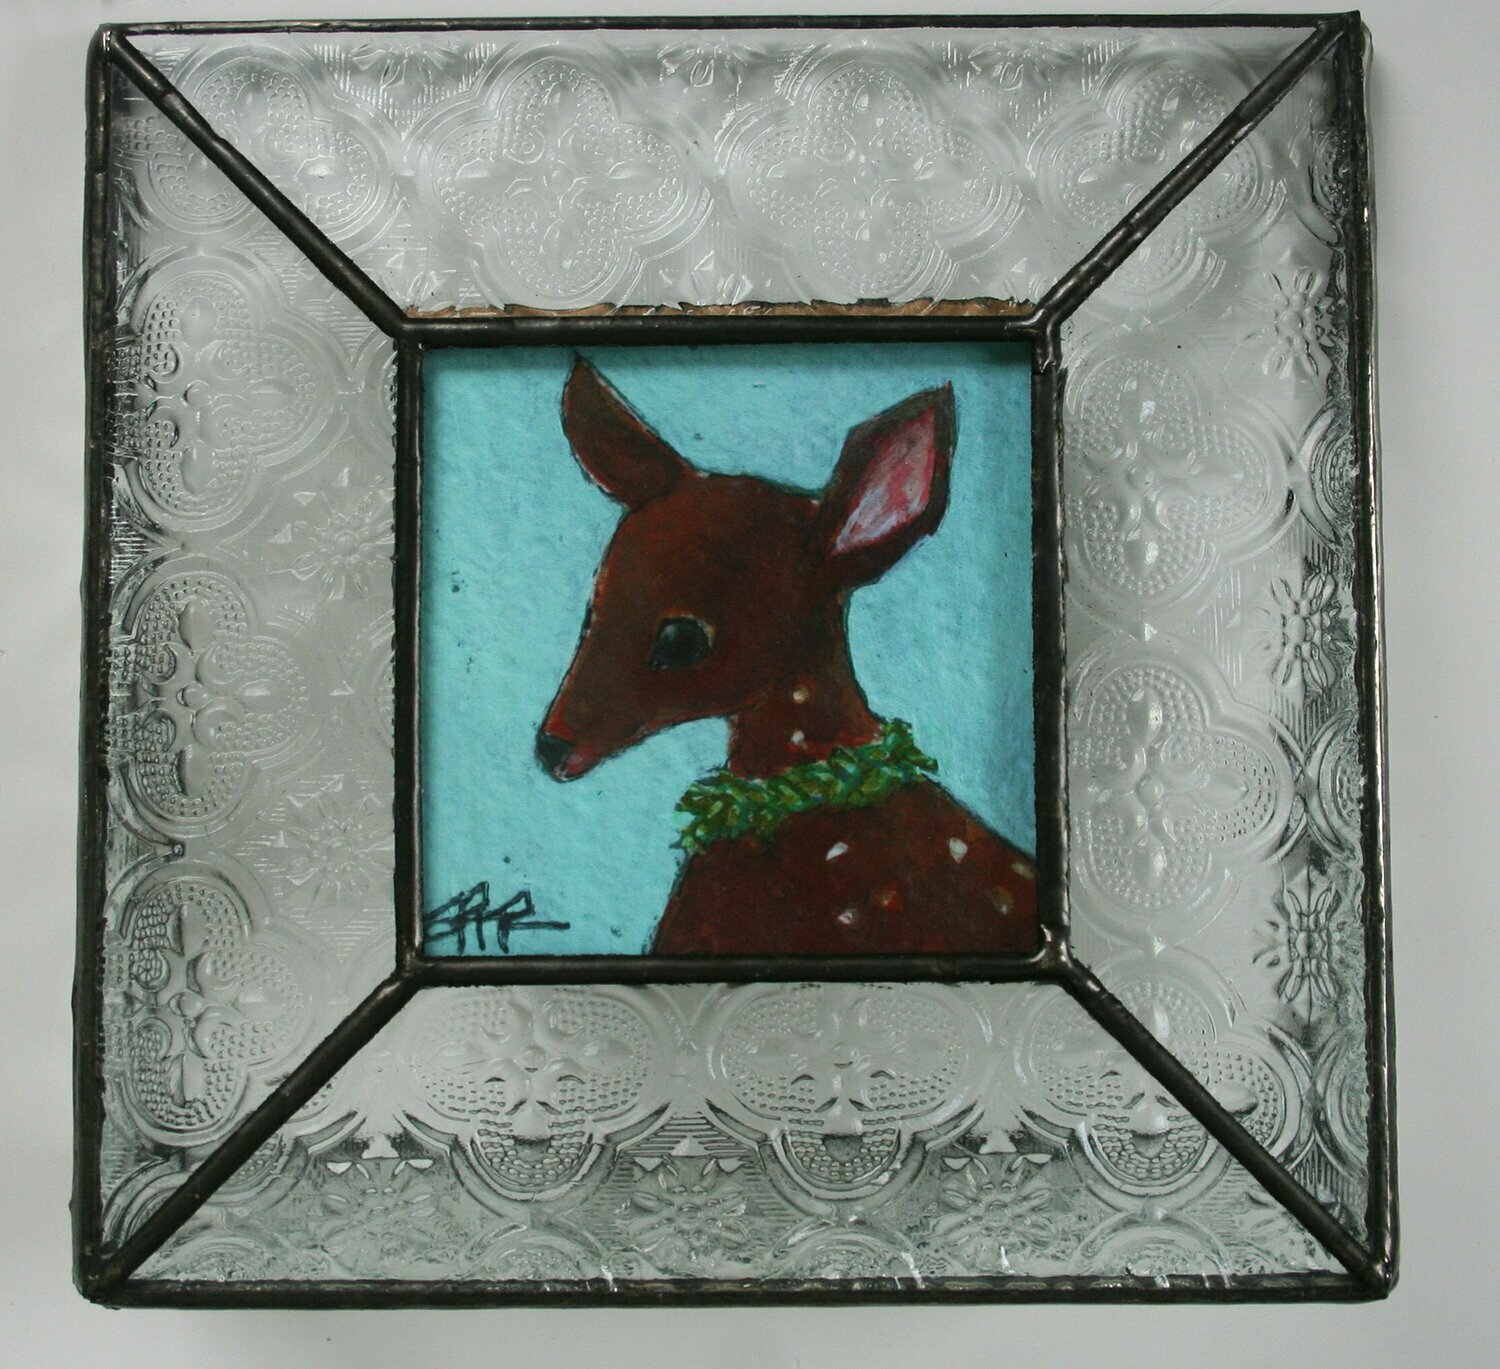 "sweet baby deer fawn with wreath 3x3"" a2n2koon print in stained glass clear vintage-style stand-up frame.  limited edition comes in gift box"